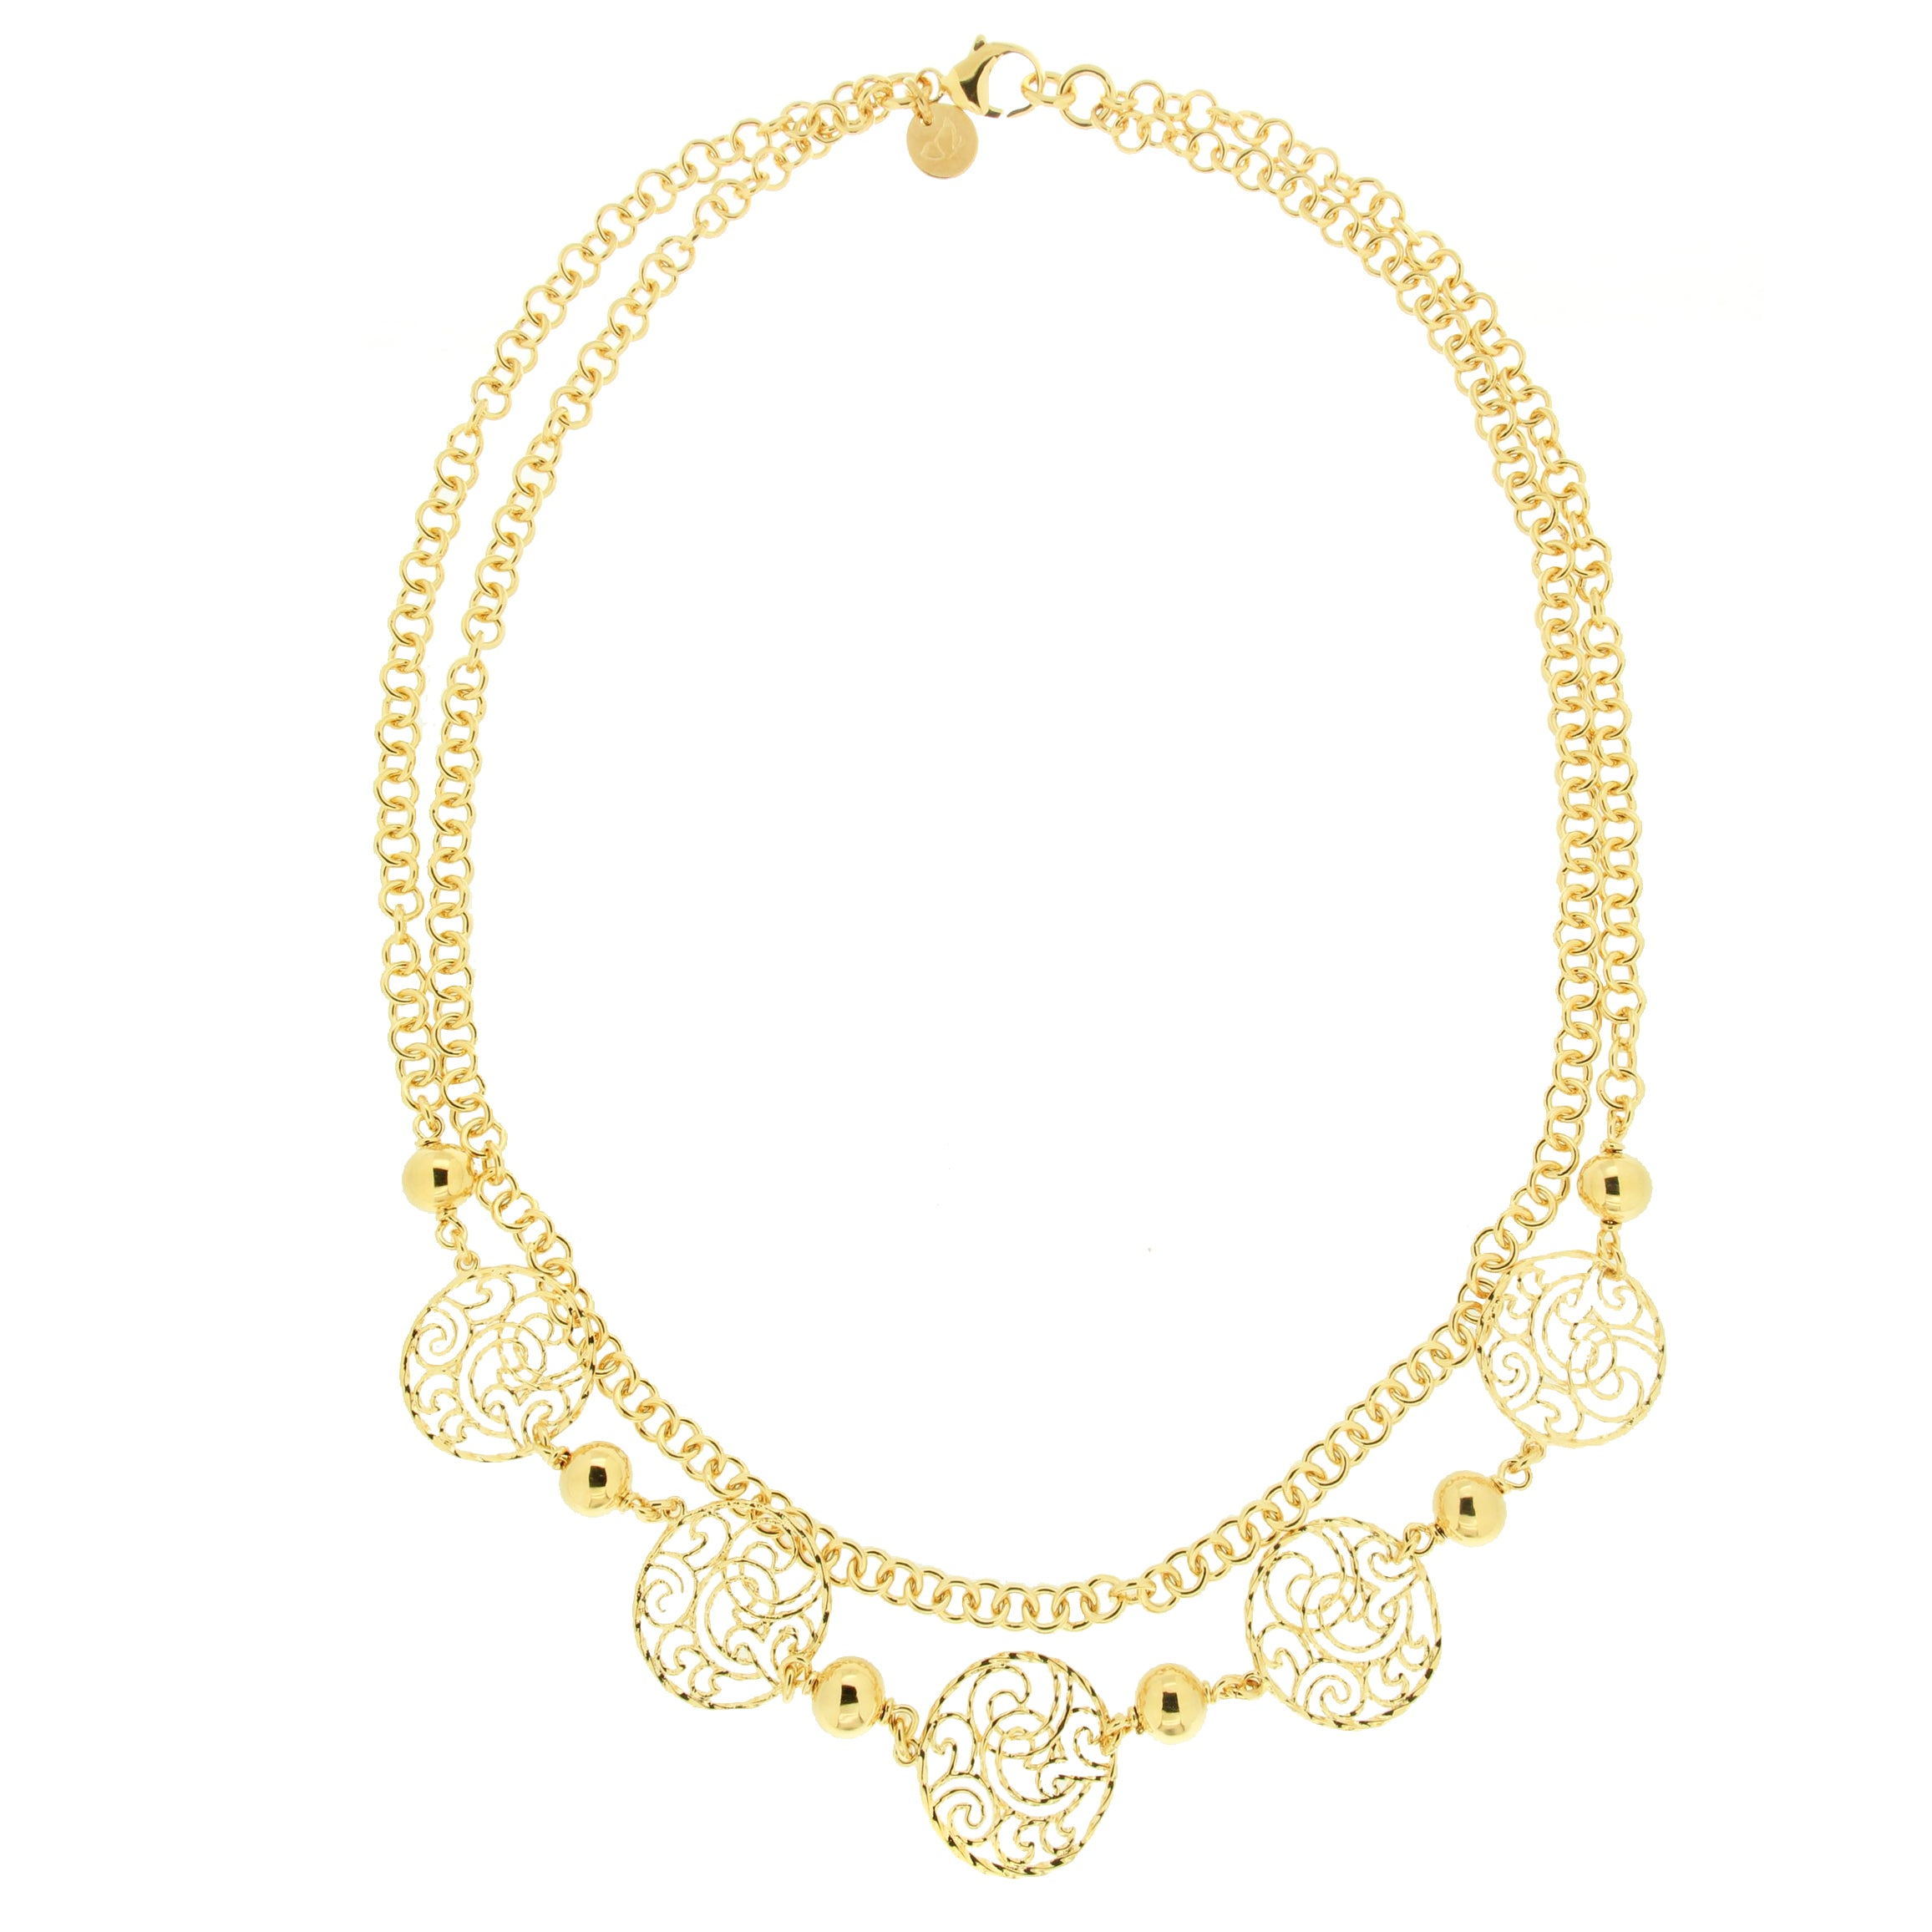 "Forever Last 18 k Gold Plated  20"" Double Strand Rolo Filigree Necklace"